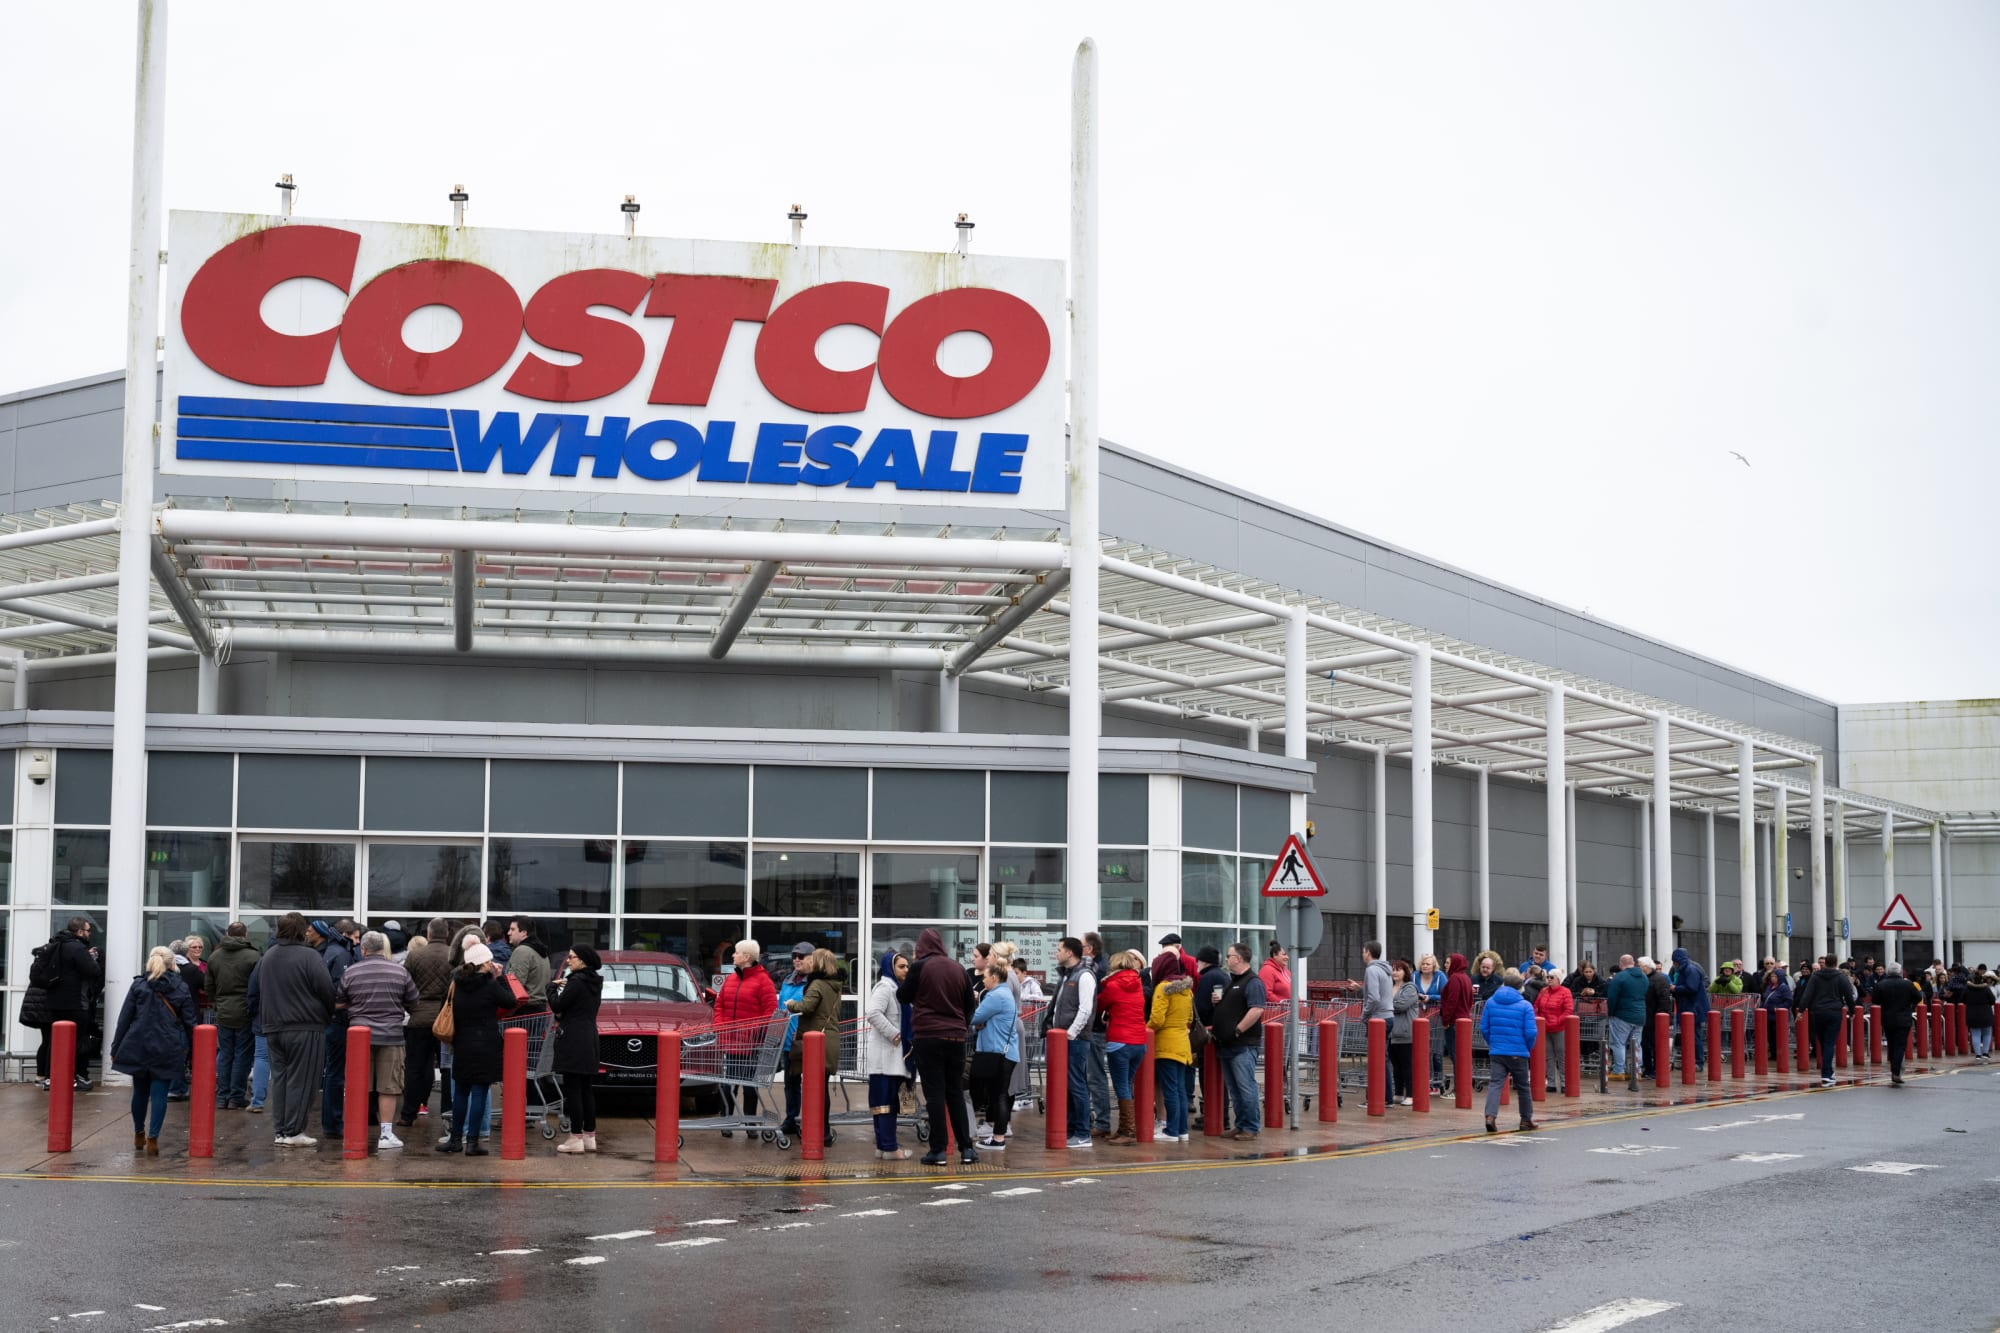 Costco is once again offering a Pots & Co dessert we can't wait to get our hands on